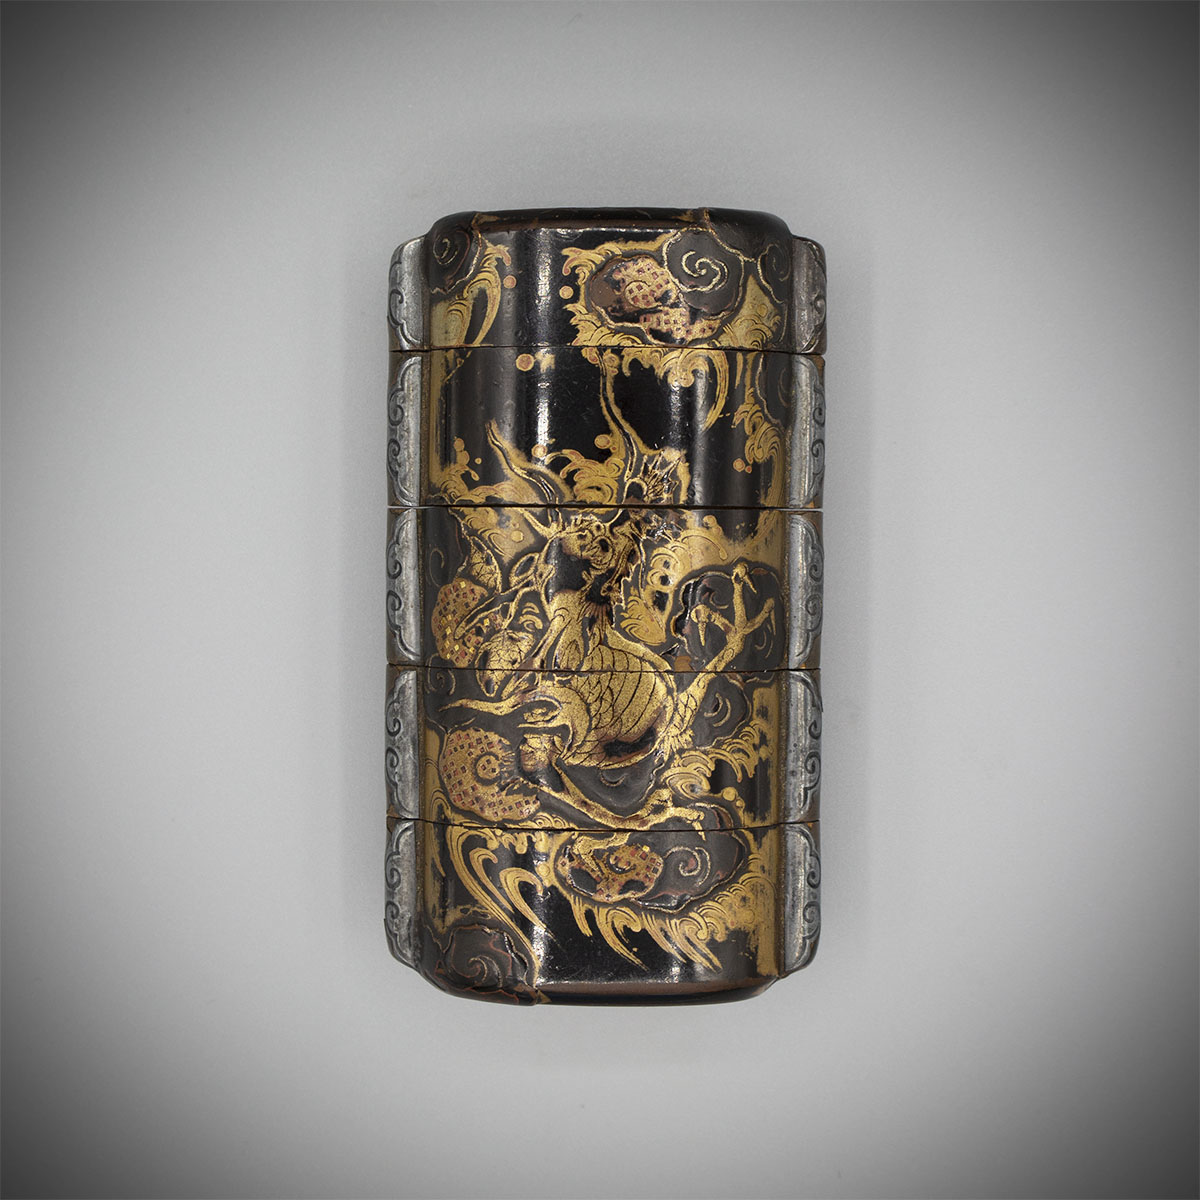 Four-case lacquer inro with dragon, MR3255_v1